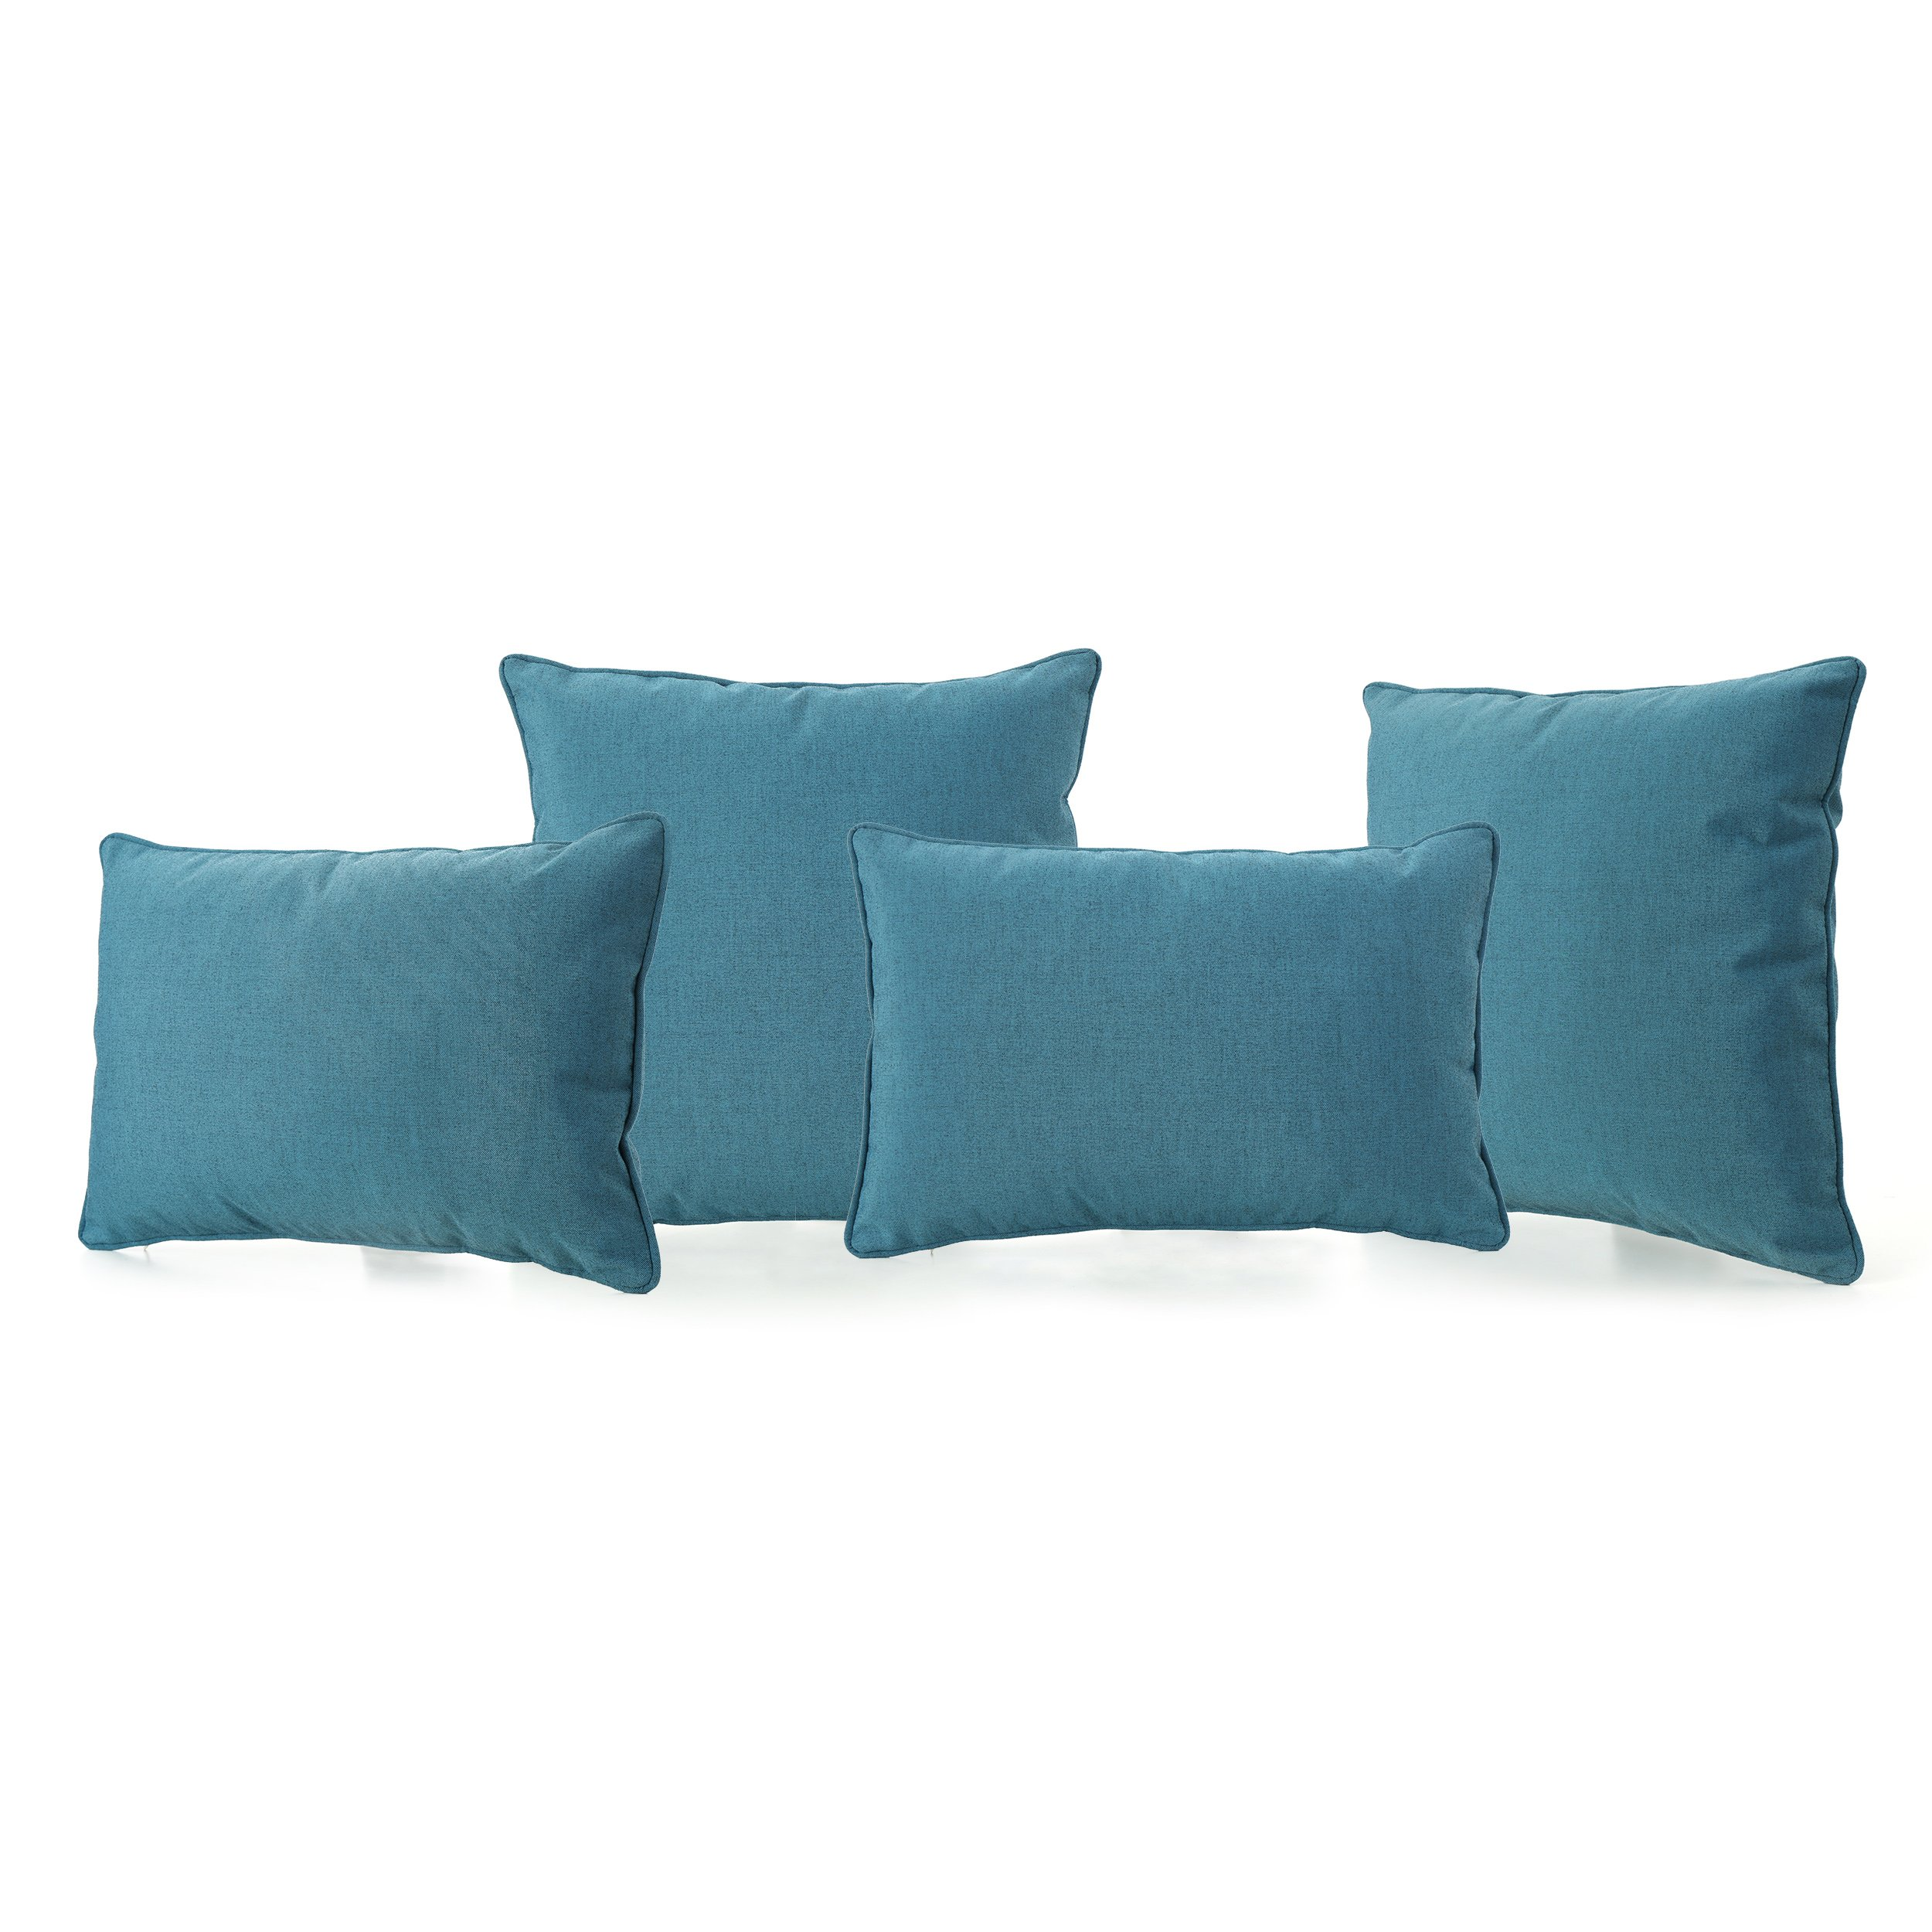 Christopher Knight Home Corona Throw Pillow, Teal by Christopher Knight Home